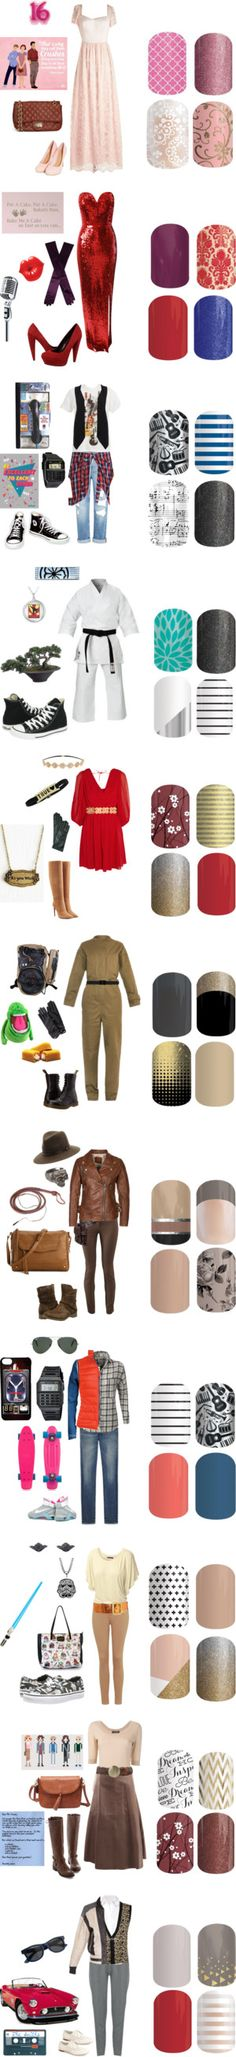 80's Move - Jamberry Nails Game by kspantonjamon on Polyvore featuring beauty, Liquorish, Jane Norman, Dents, Dolce Vita, WallPops, Genetic Denim, Evil Twin, Ben Sherman and CellPowerCases